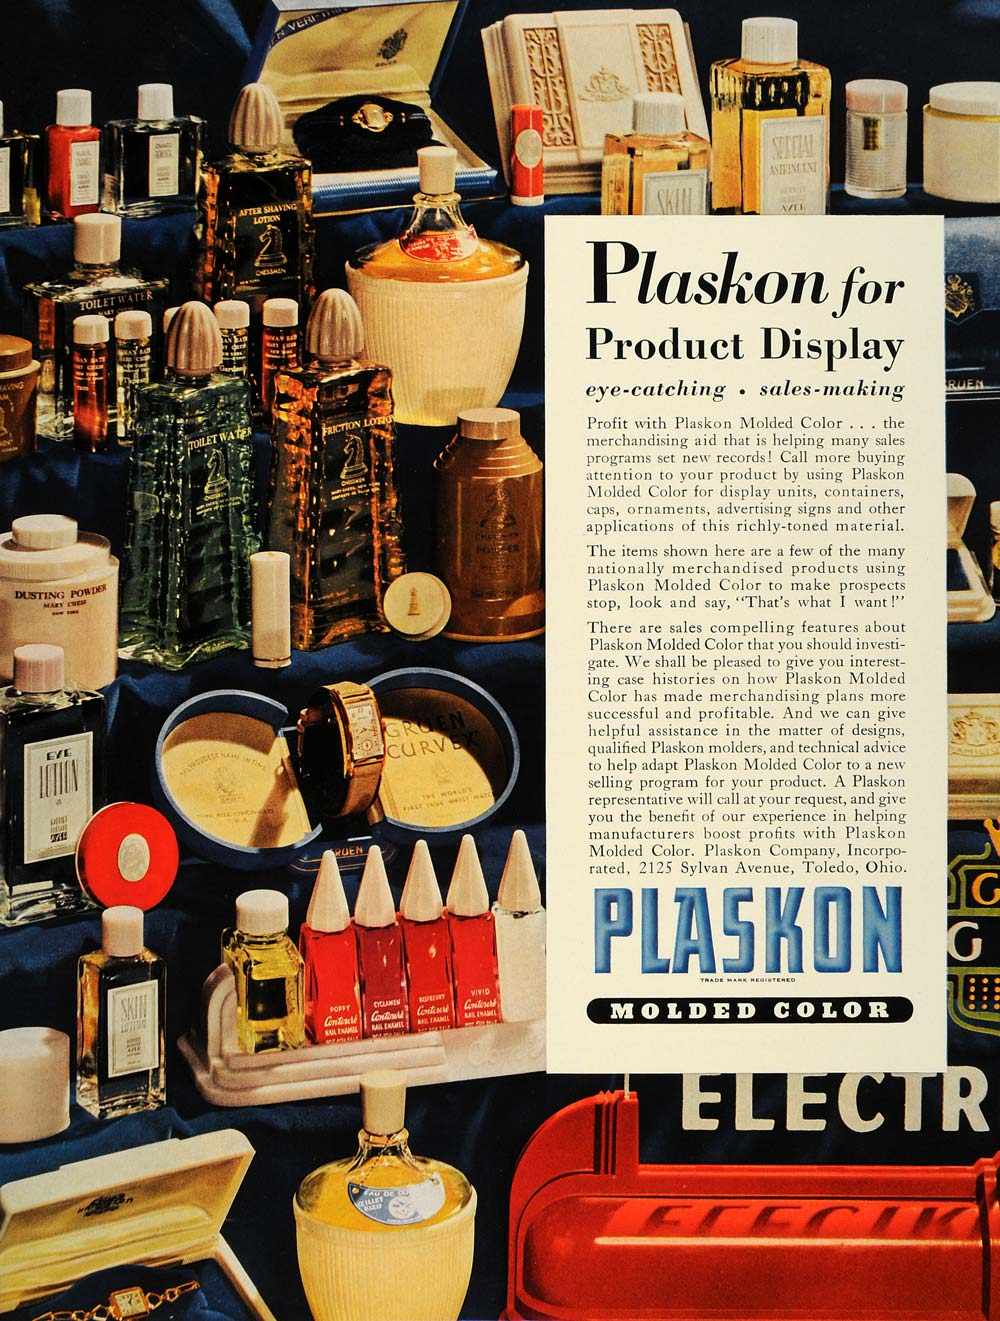 1940 Ad Plaskon Molded Color Plastic Product Display - ORIGINAL ADVERTISING FT8